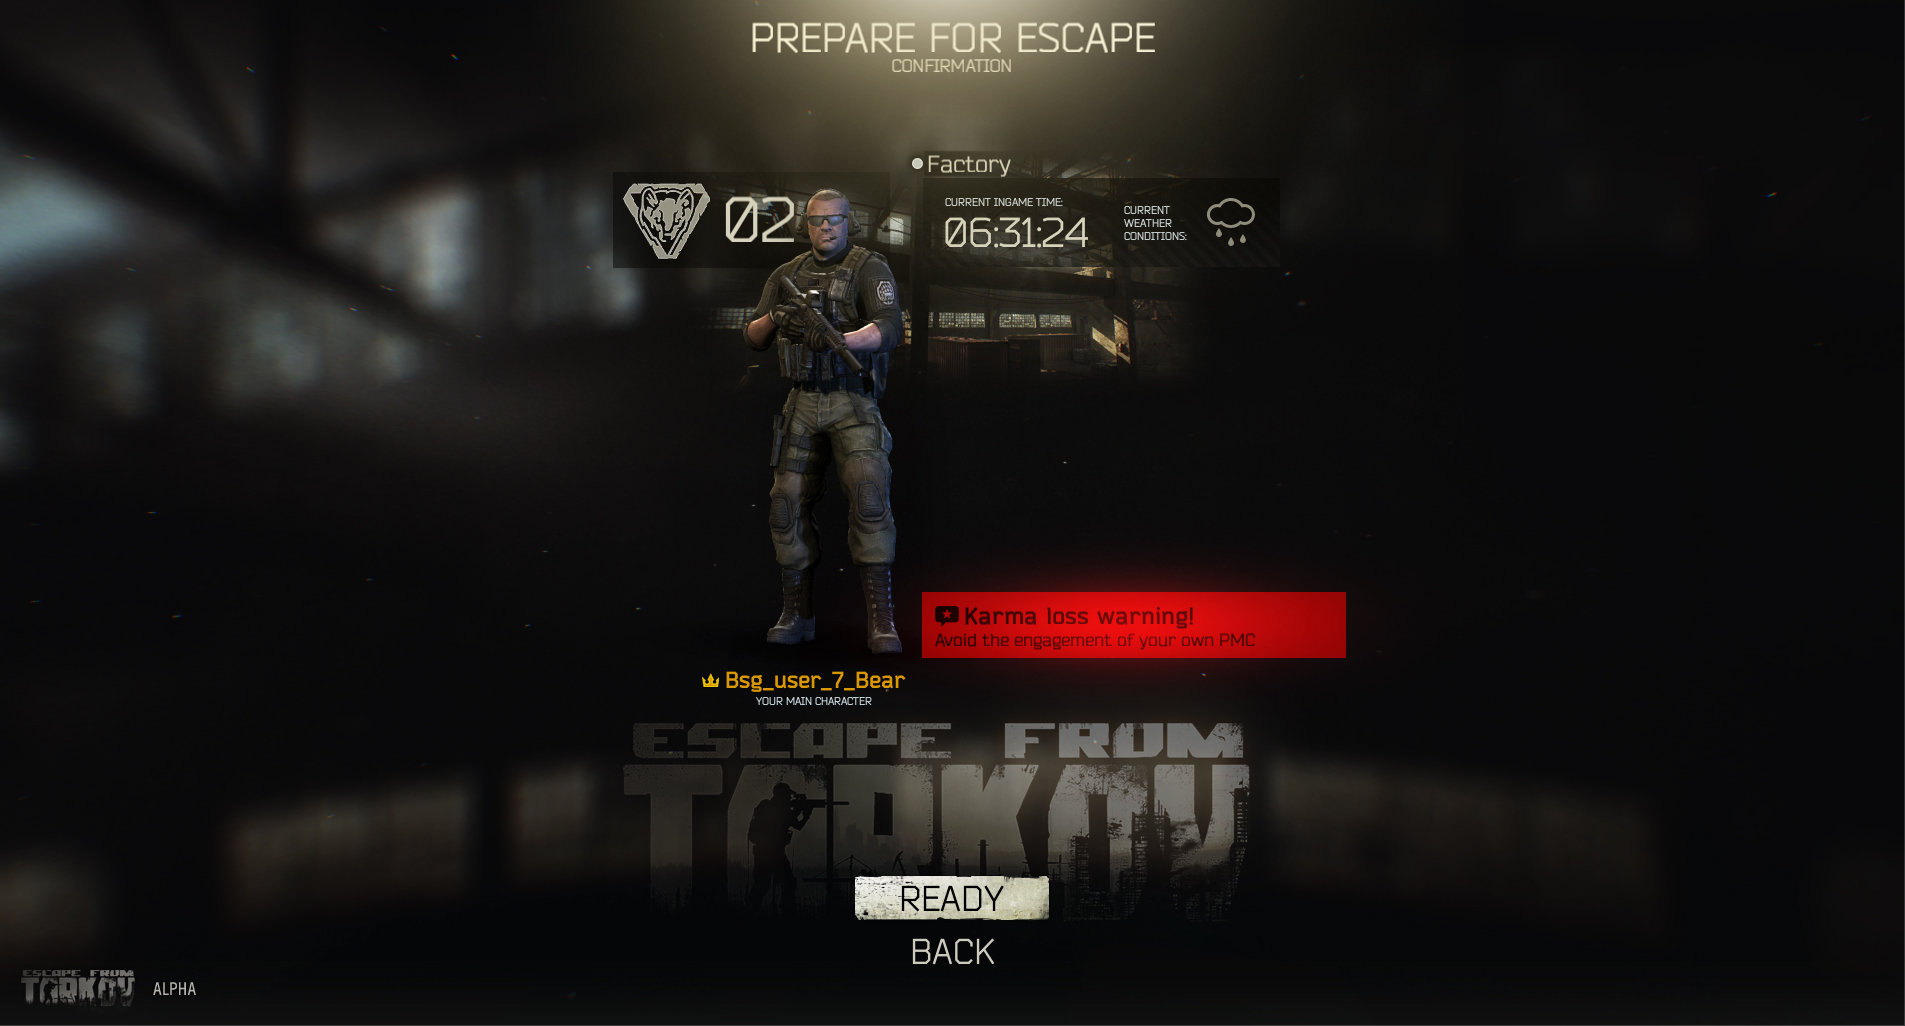 Have a look at Escape from Tarkov's UI in these new screens